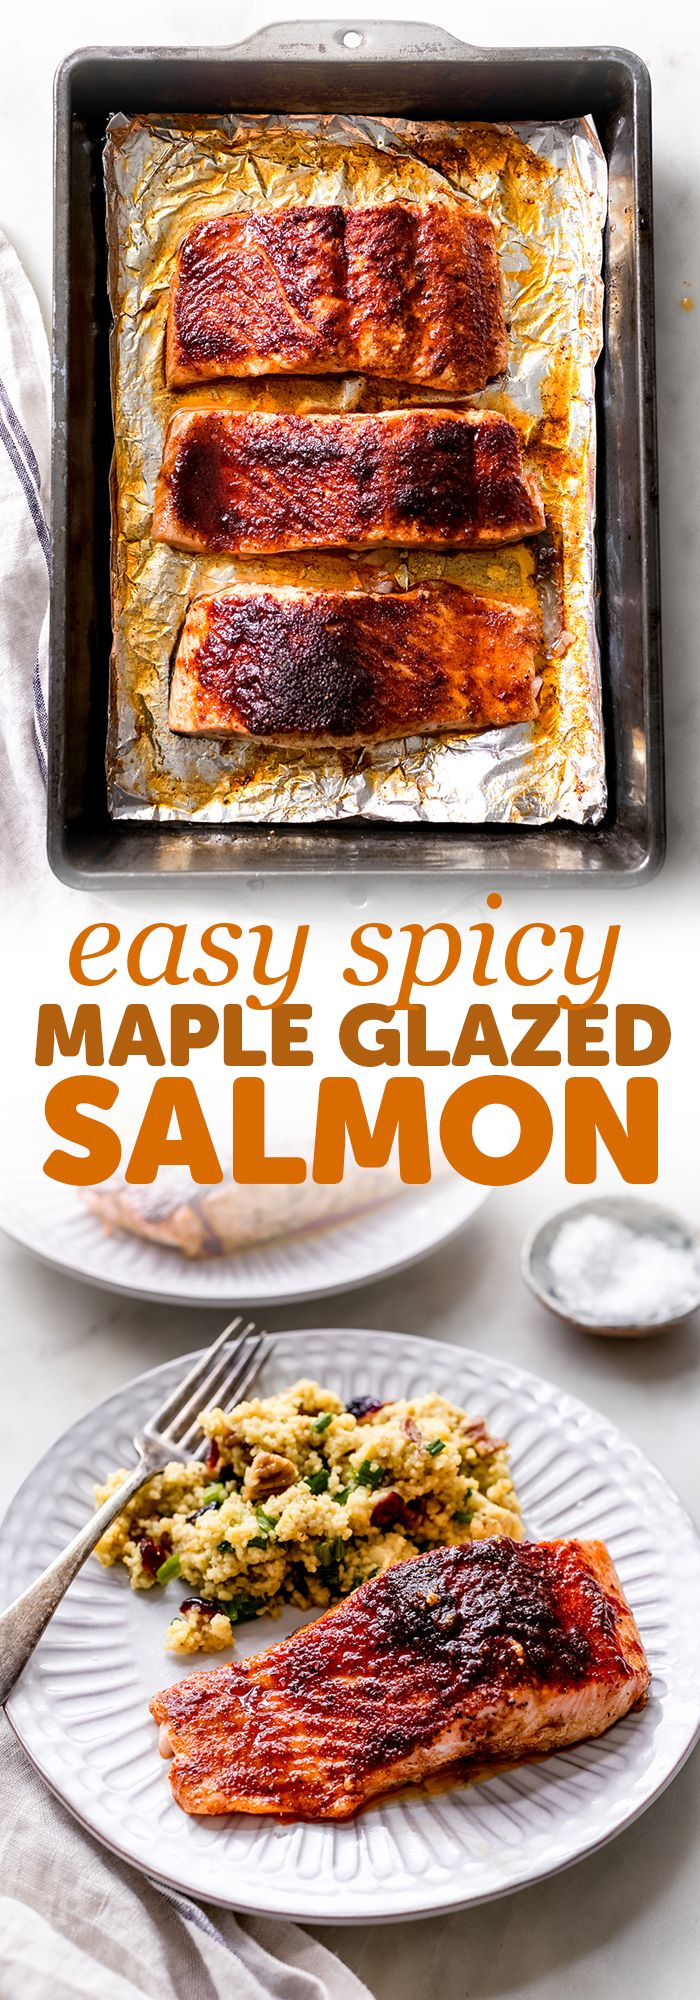 Spicy Maple Glazed Salmon Recipe - Little Spice Jar